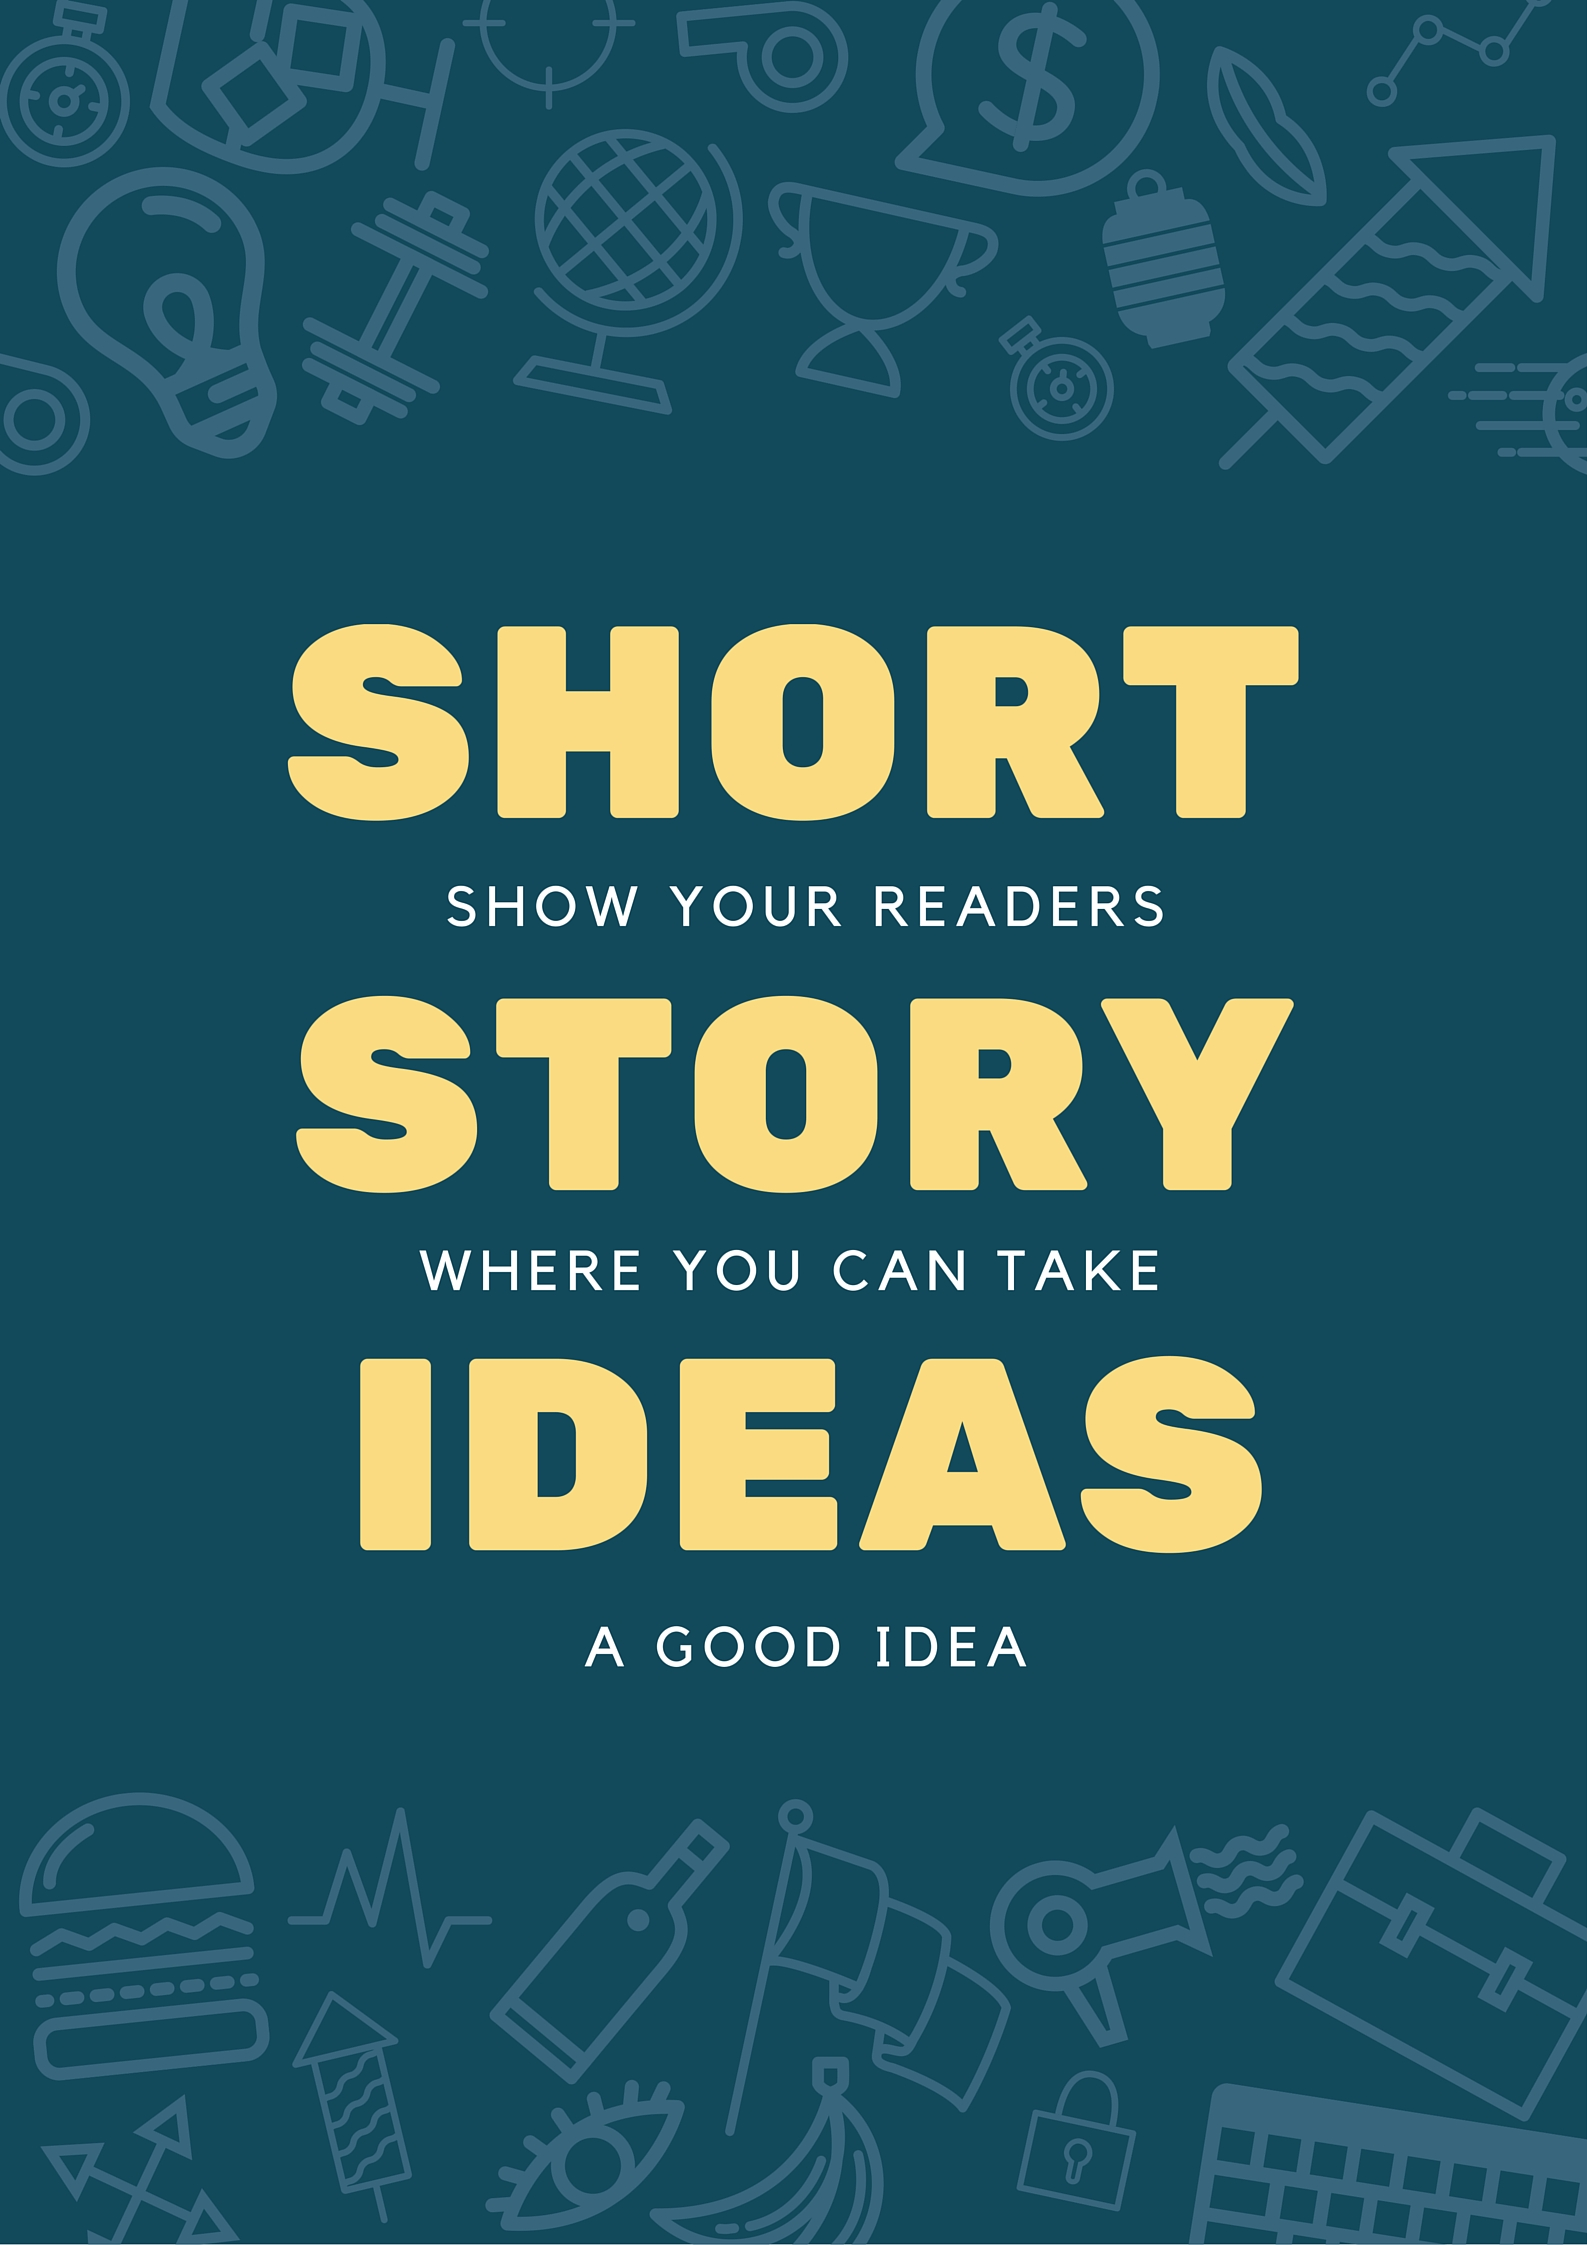 short story ideas and creative writing prompts Links: prompts, exercises & idea-generators a list of 200+ short story ideas (and tips on how to come up with your own) 1,000 awesome writing prompts: 1,000 creative writing prompts: ideas for blogs, scripts, stories and more.